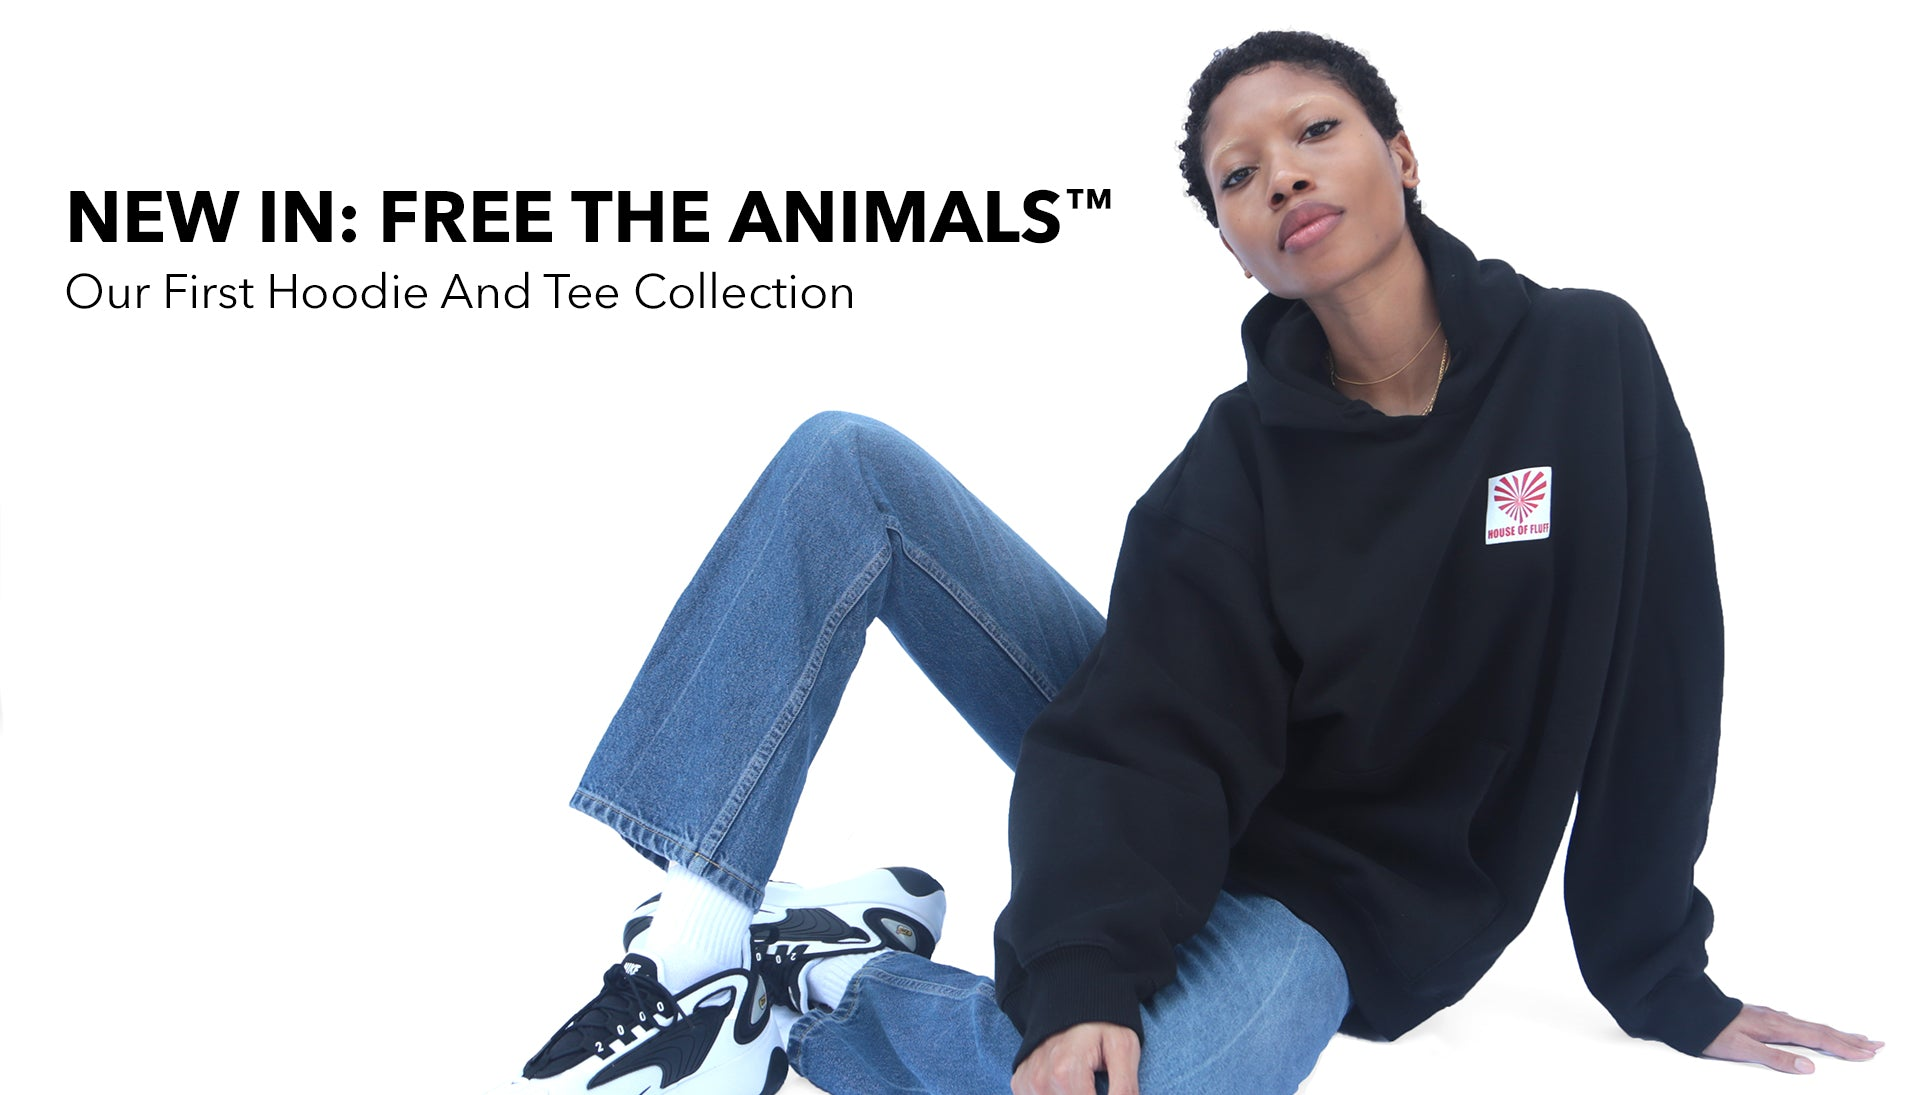 House of Fluff's FREE THE ANIMALS™ Collection